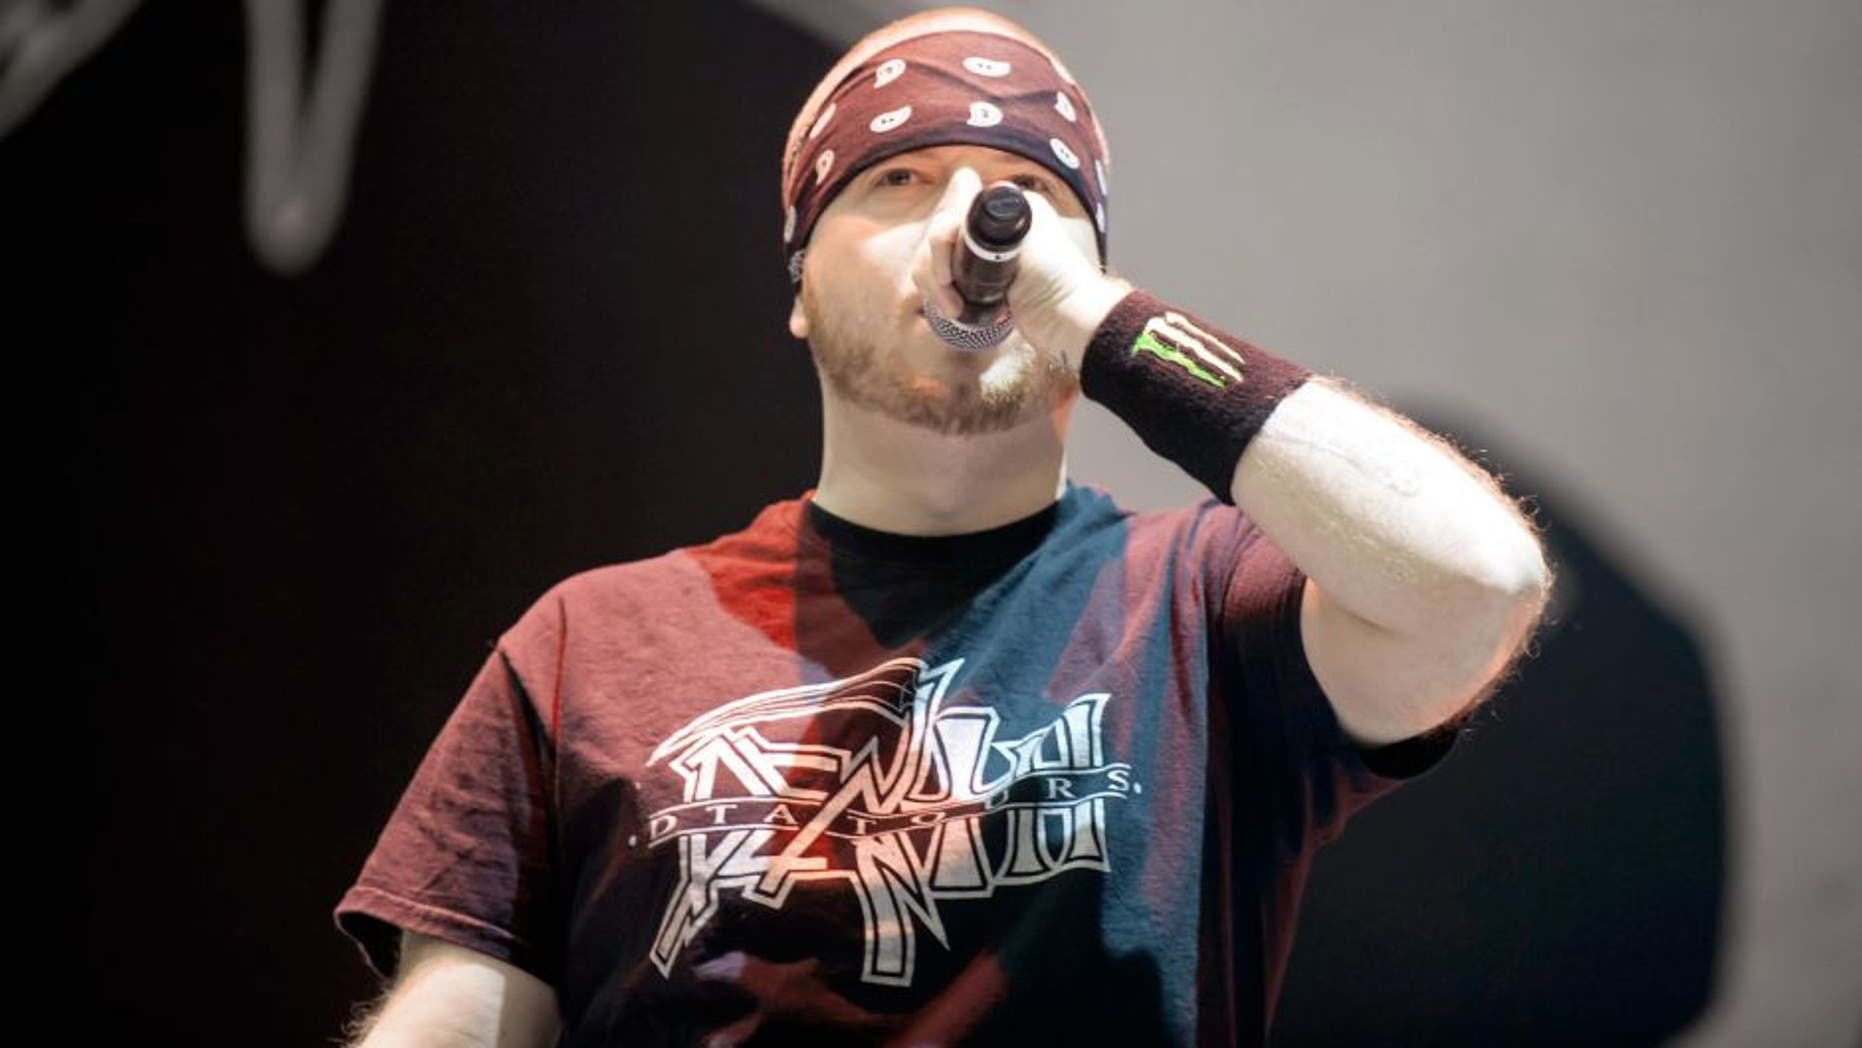 GELSENKIRCHEN, GERMANY - MAY 29: Jamey Jasta of Hatebreed performs on stage at the Veltins-Arena on May 29, 2015 in Gelsenkirchen, Germany. (Photo by Marc Pfitzenreuter/Redferns via Getty Images)